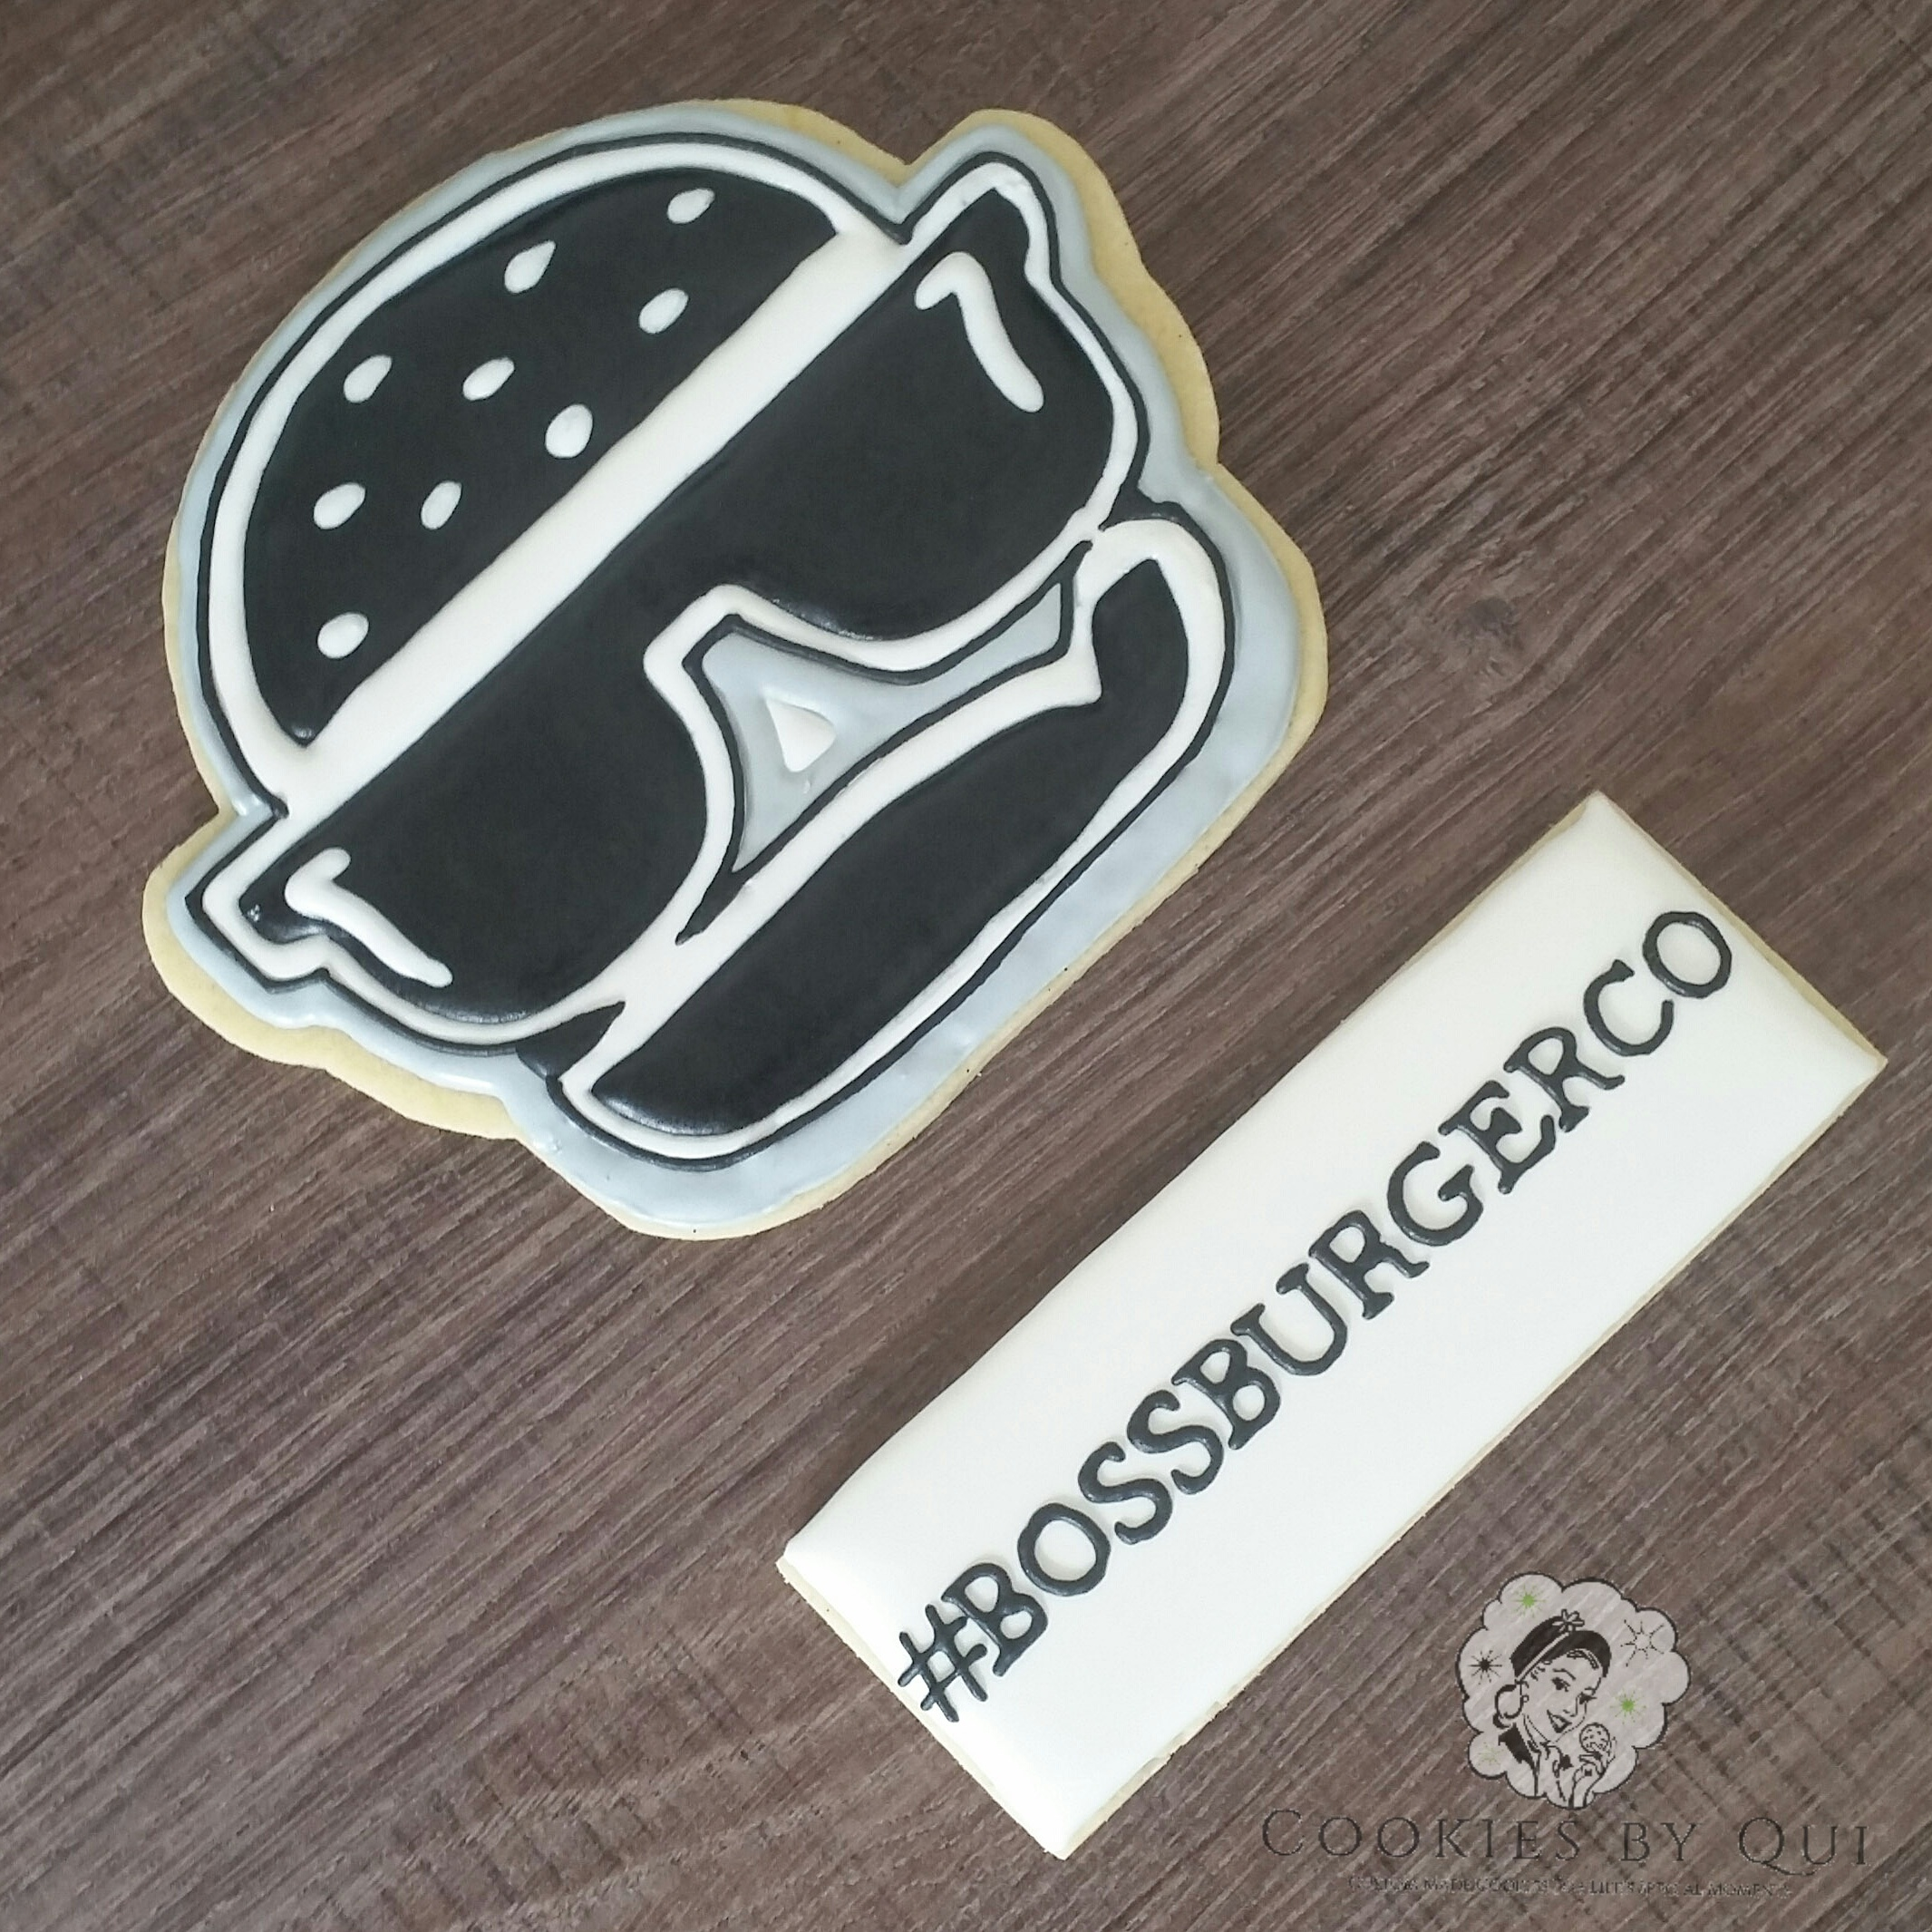 Boss Burger Co Logo Cookie